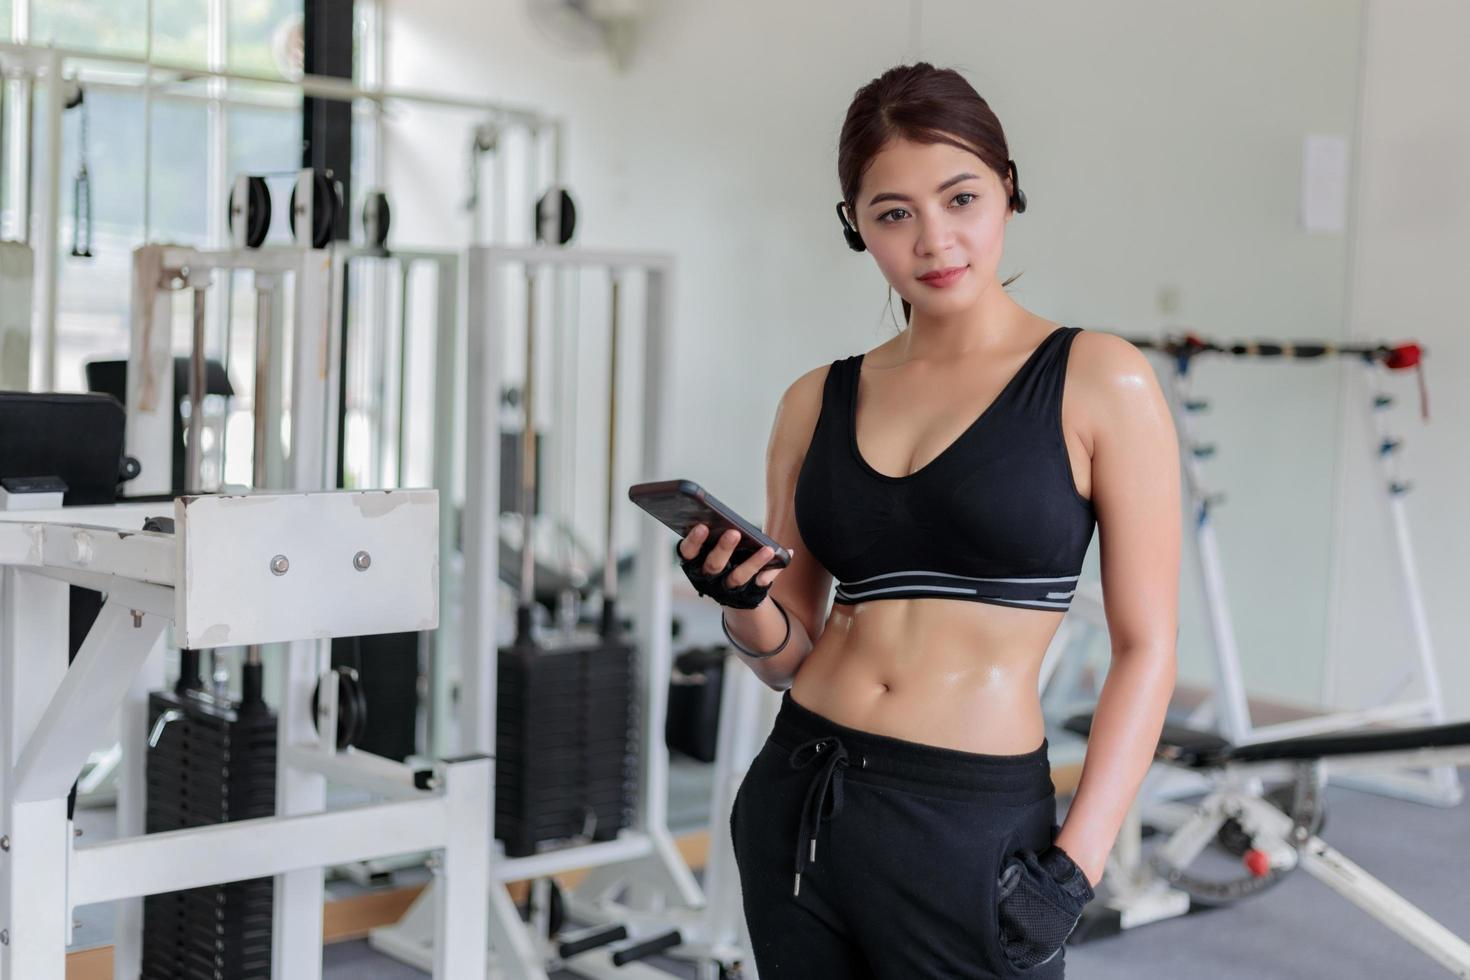 Asian female athlete at the gym photo